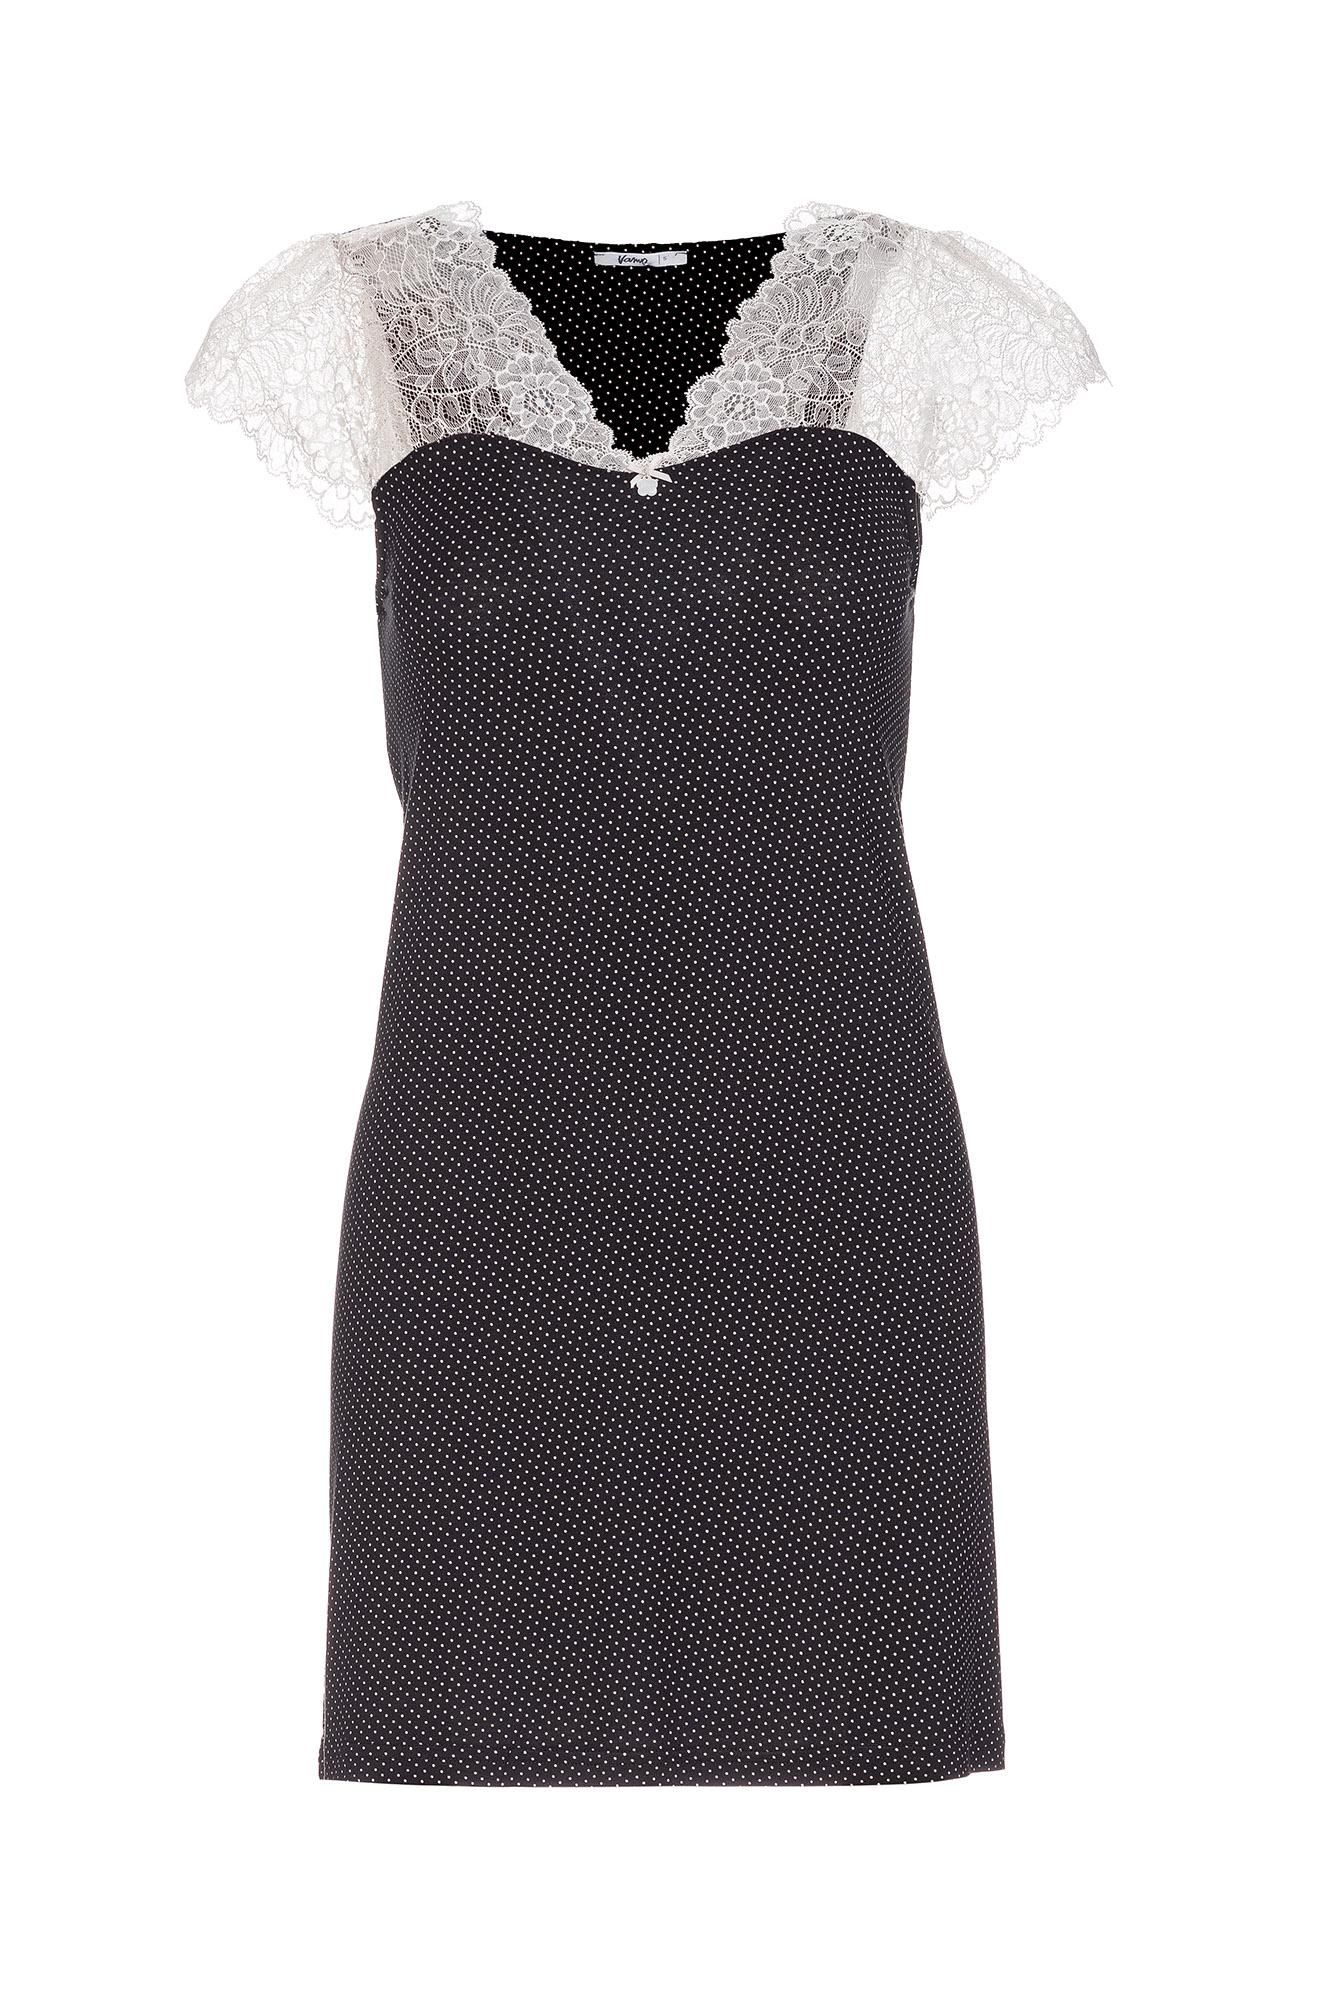 Women's Polka Dot Nightgown